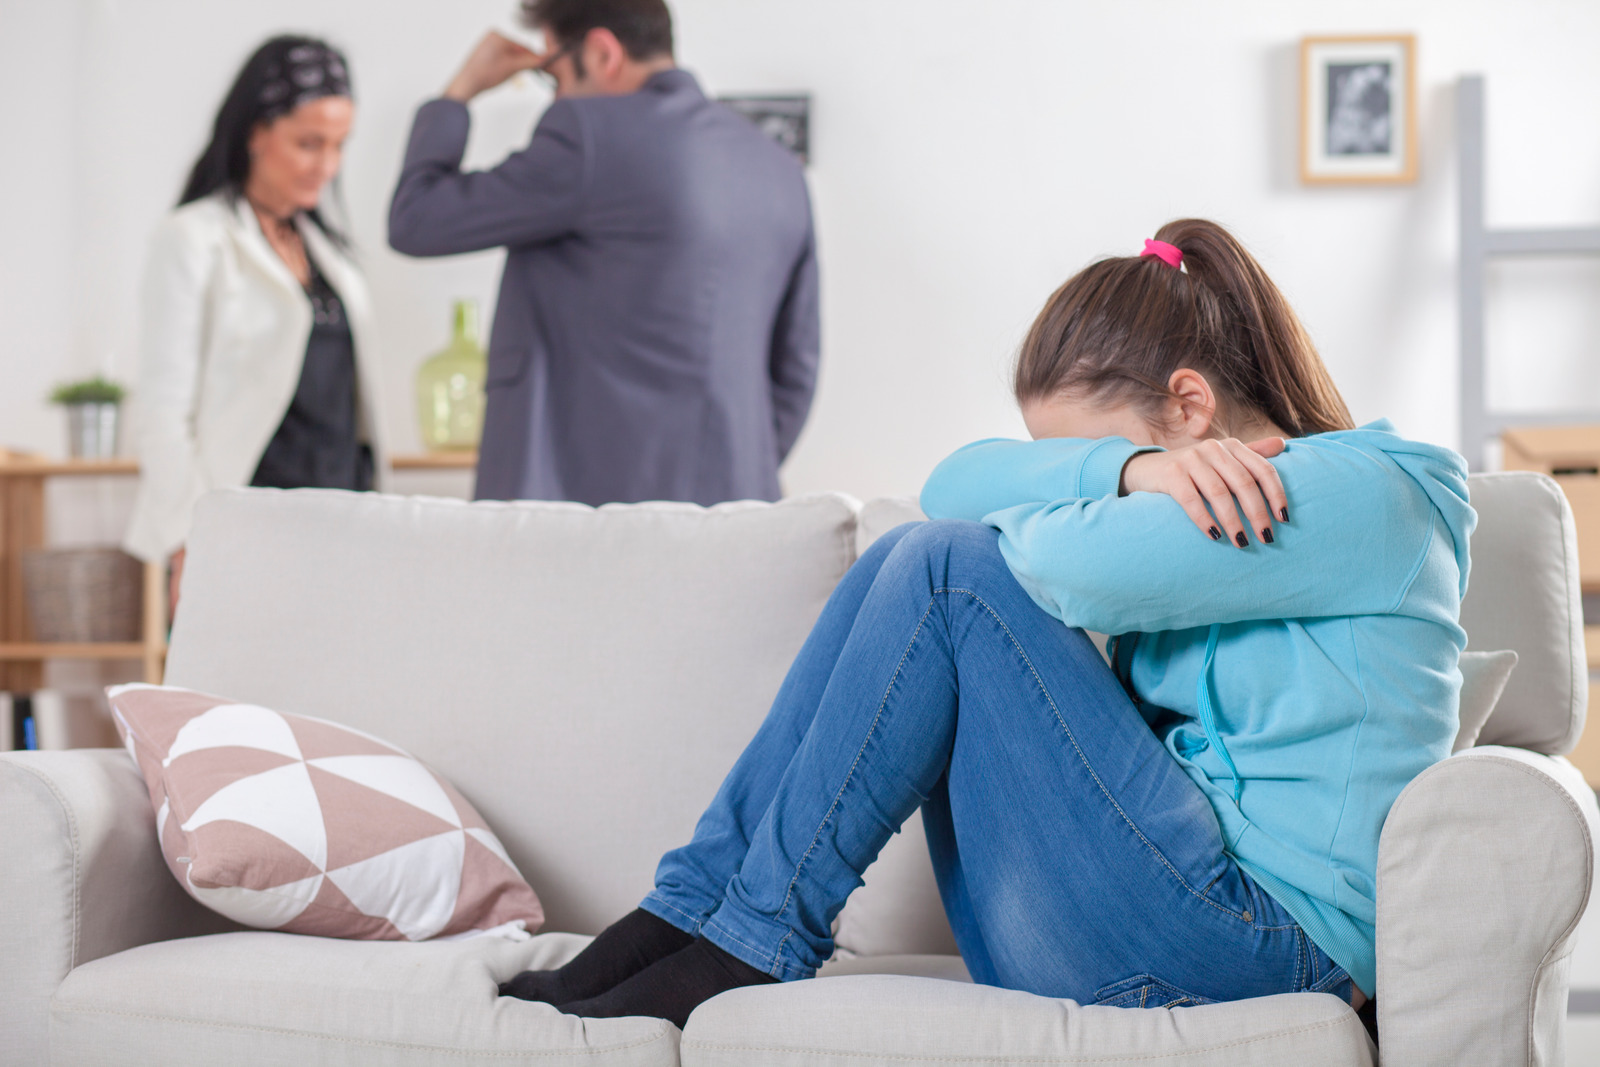 Understanding the impact separation and divorce has on your teens